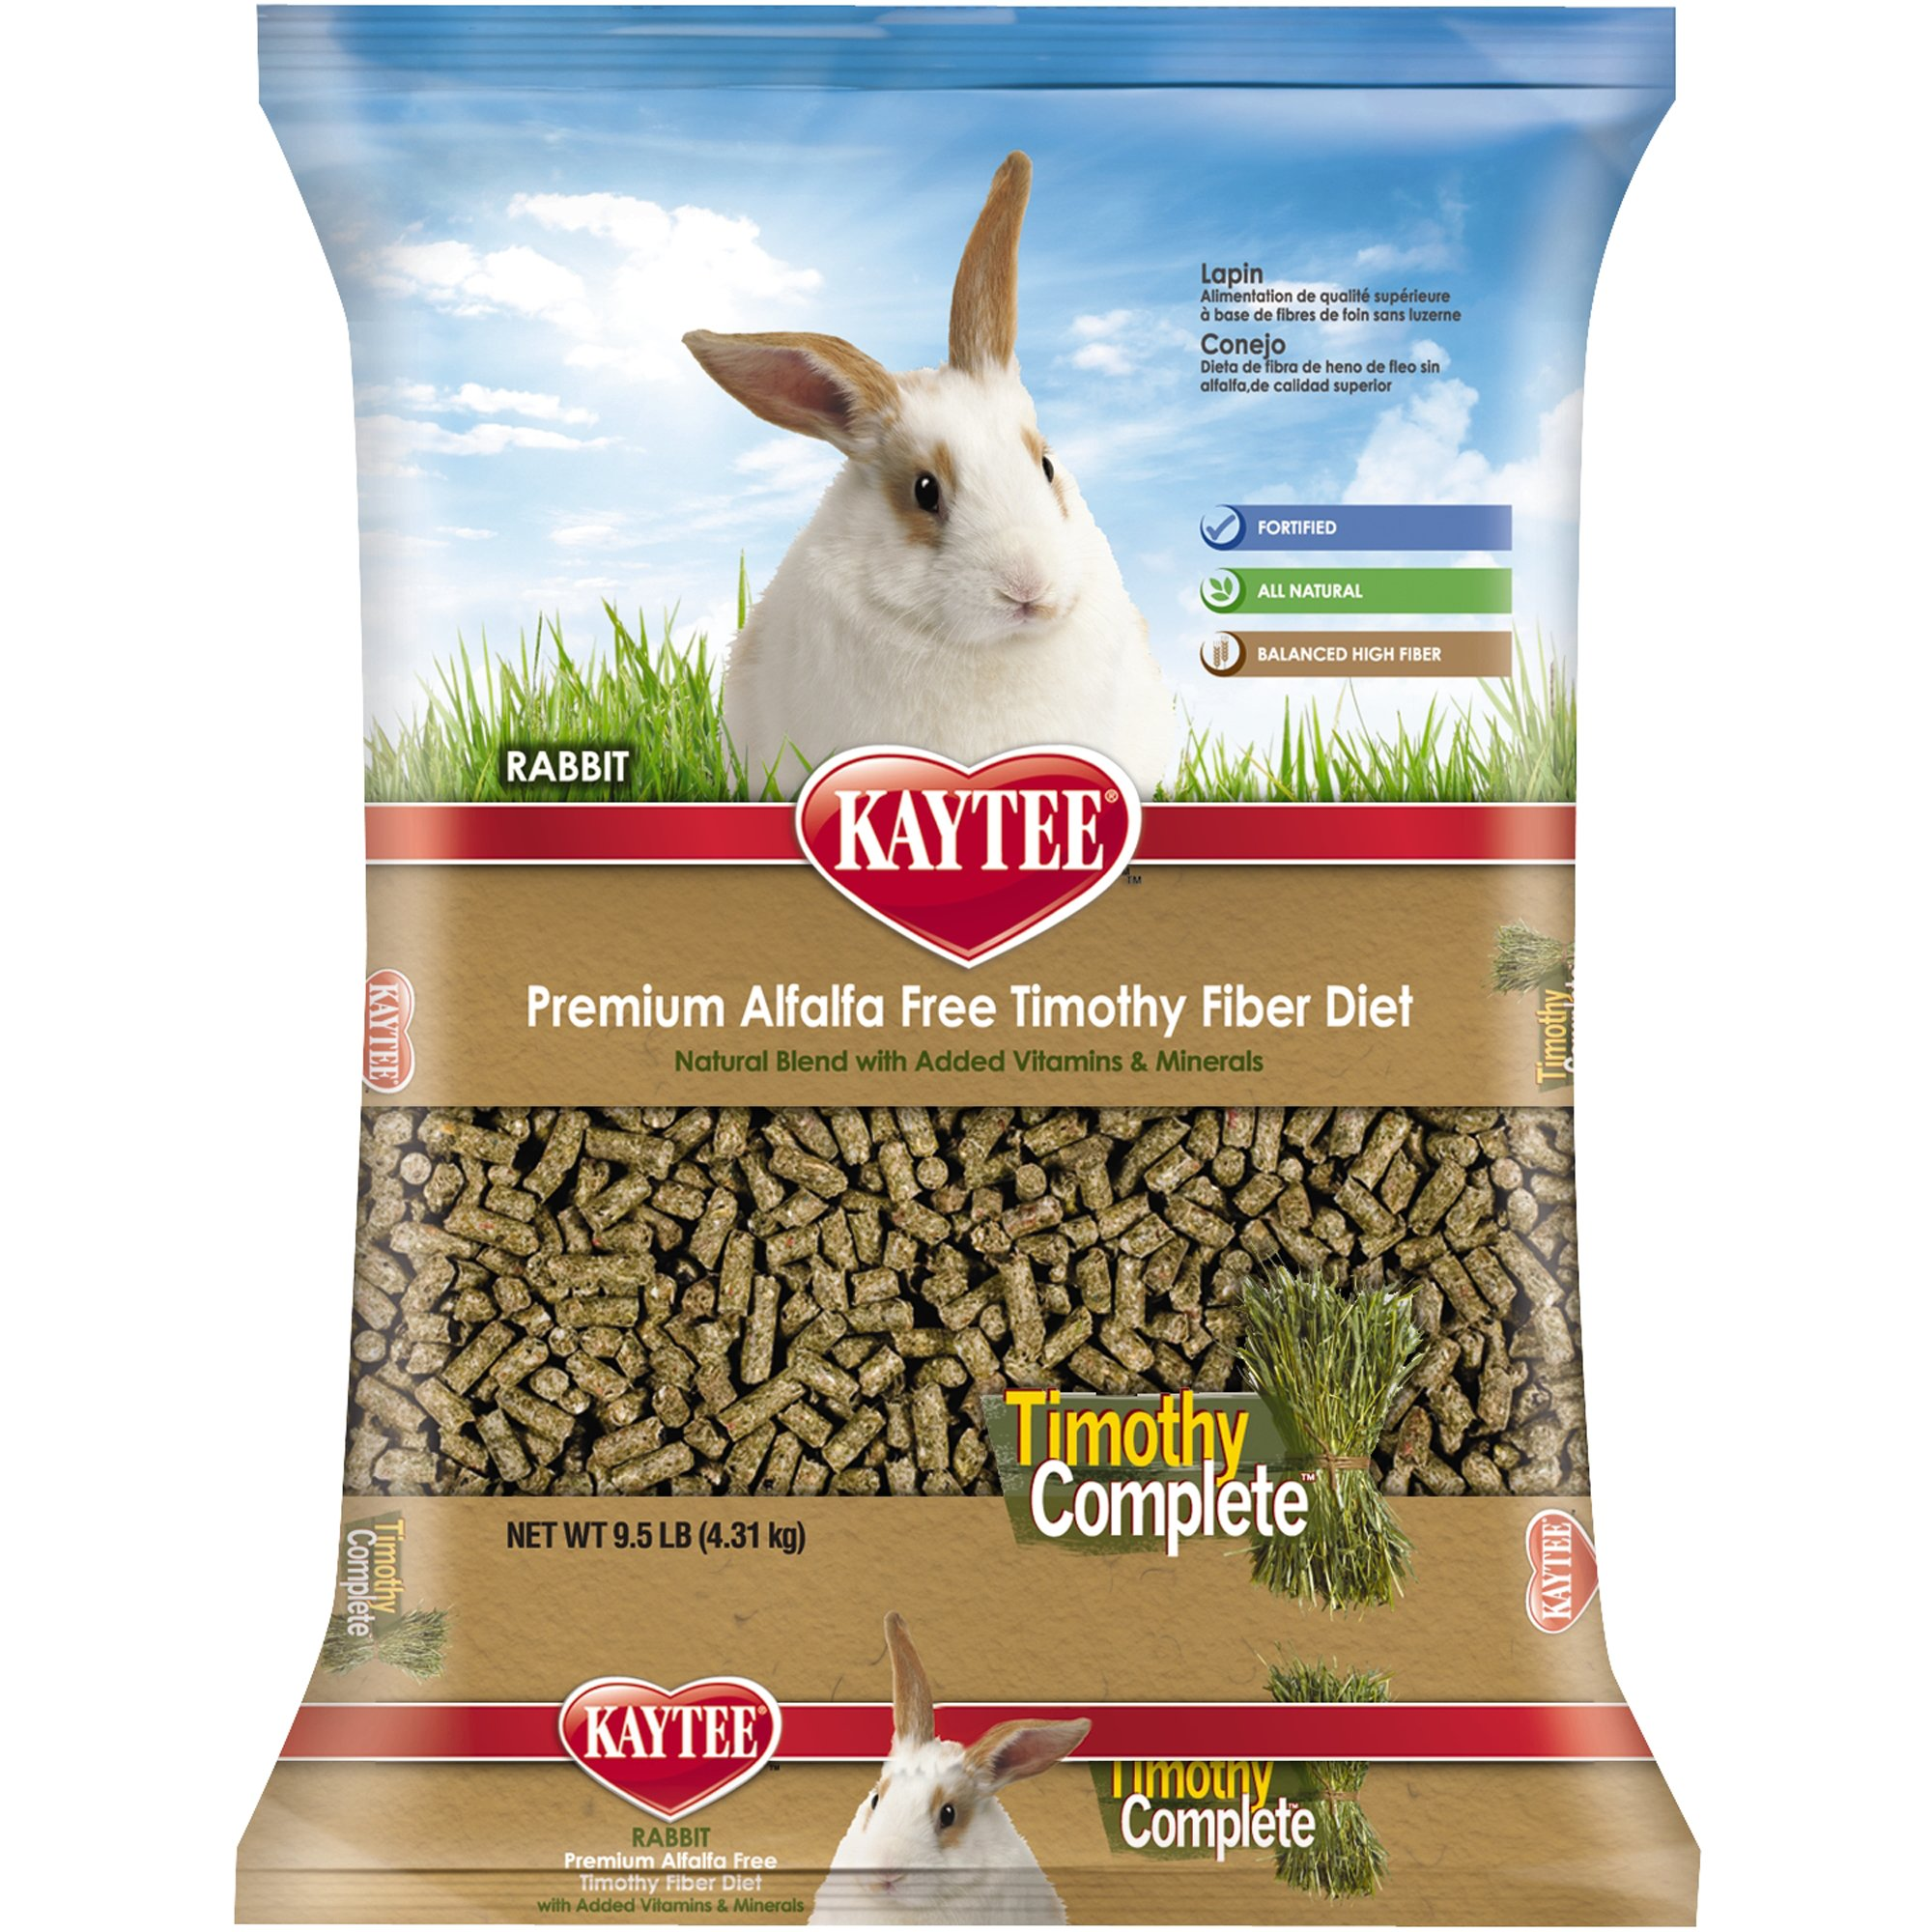 Discussion on this topic: How to Feed Your Bunny Vitamins, how-to-feed-your-bunny-vitamins/